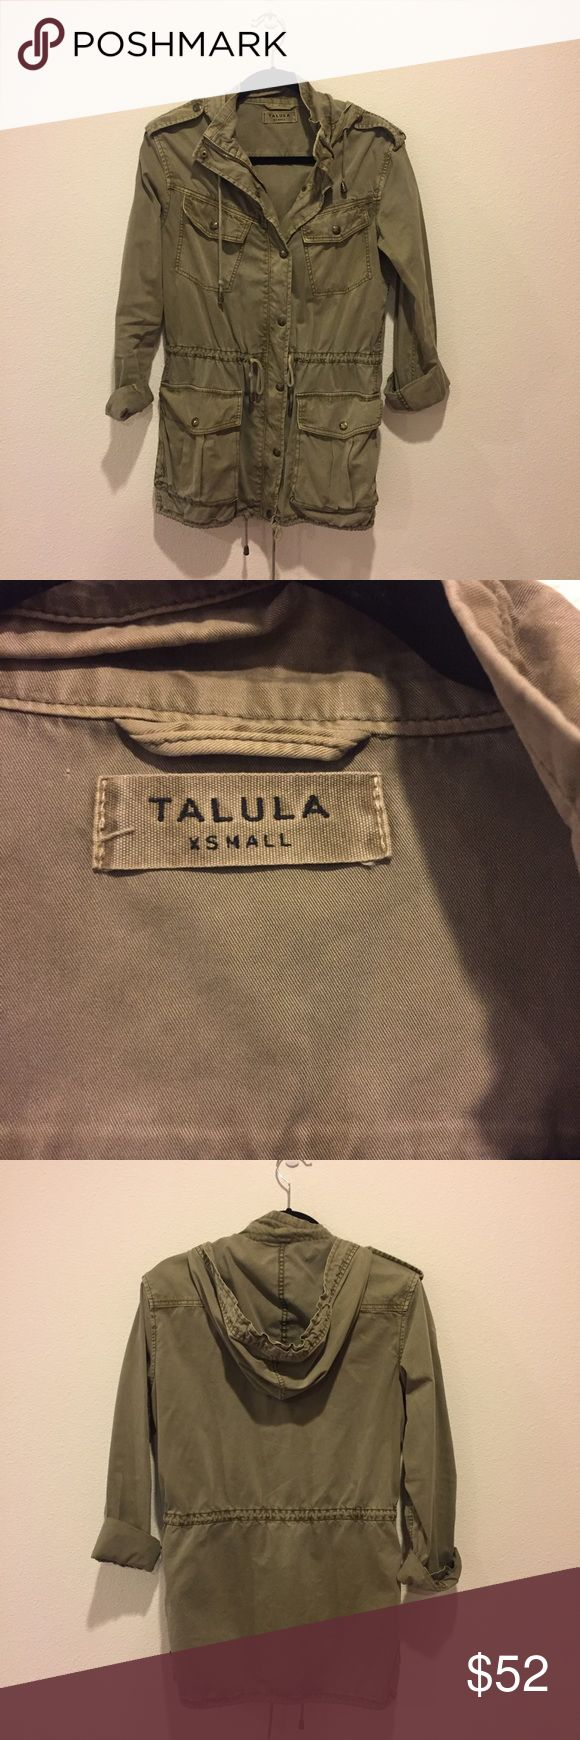 Aritzia Talula Green Military Jacket Talula Trooper Jacket in XS. Worn but good condition. No stains / rips, etc. Runs big - I normally wear size small Aritzia Jackets & Coats Utility Jackets